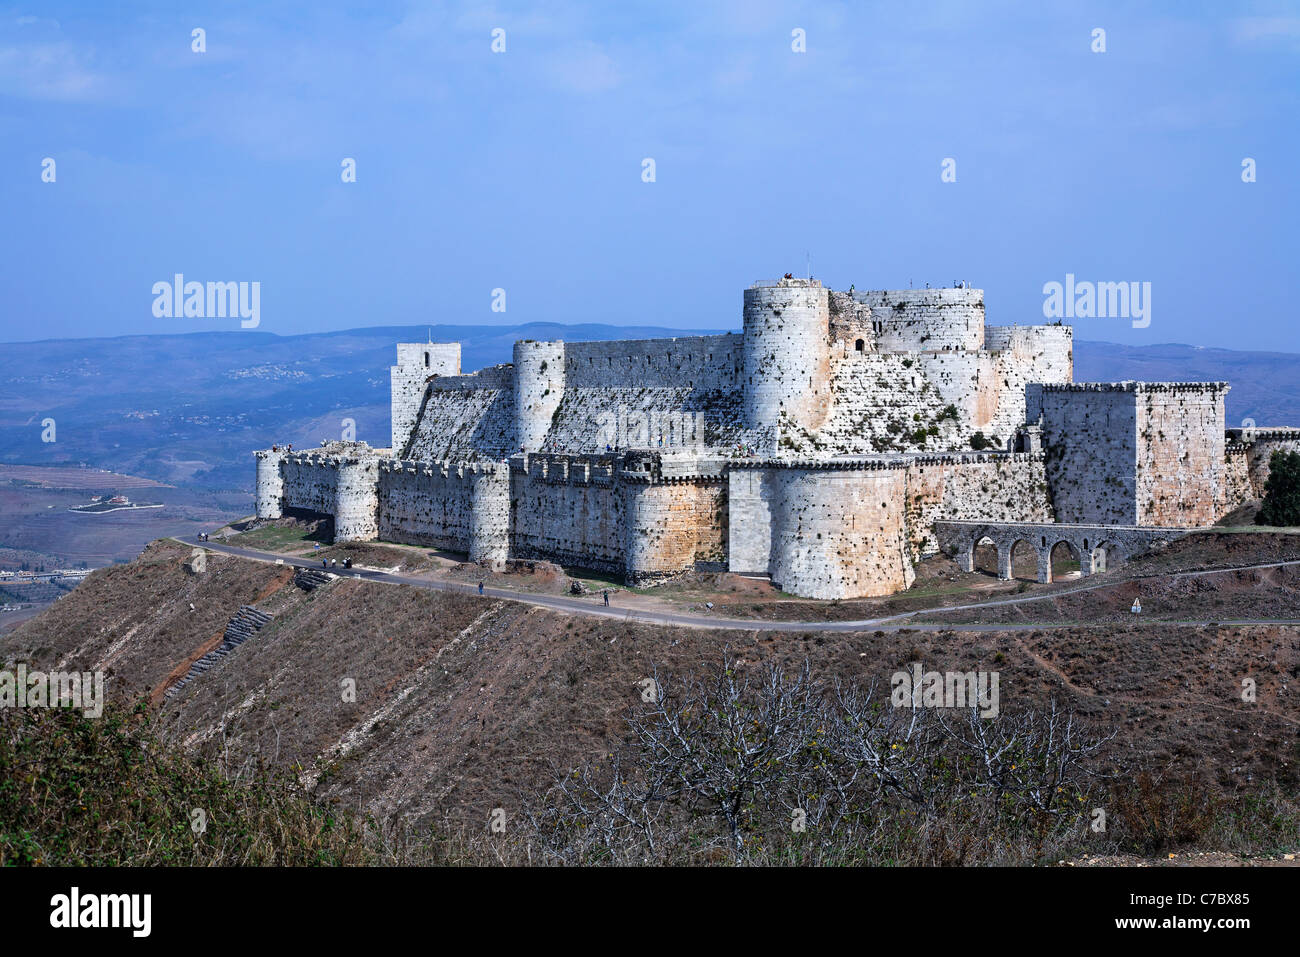 The crusader castle Krak Des Chevaliers, Syria - Stock Image